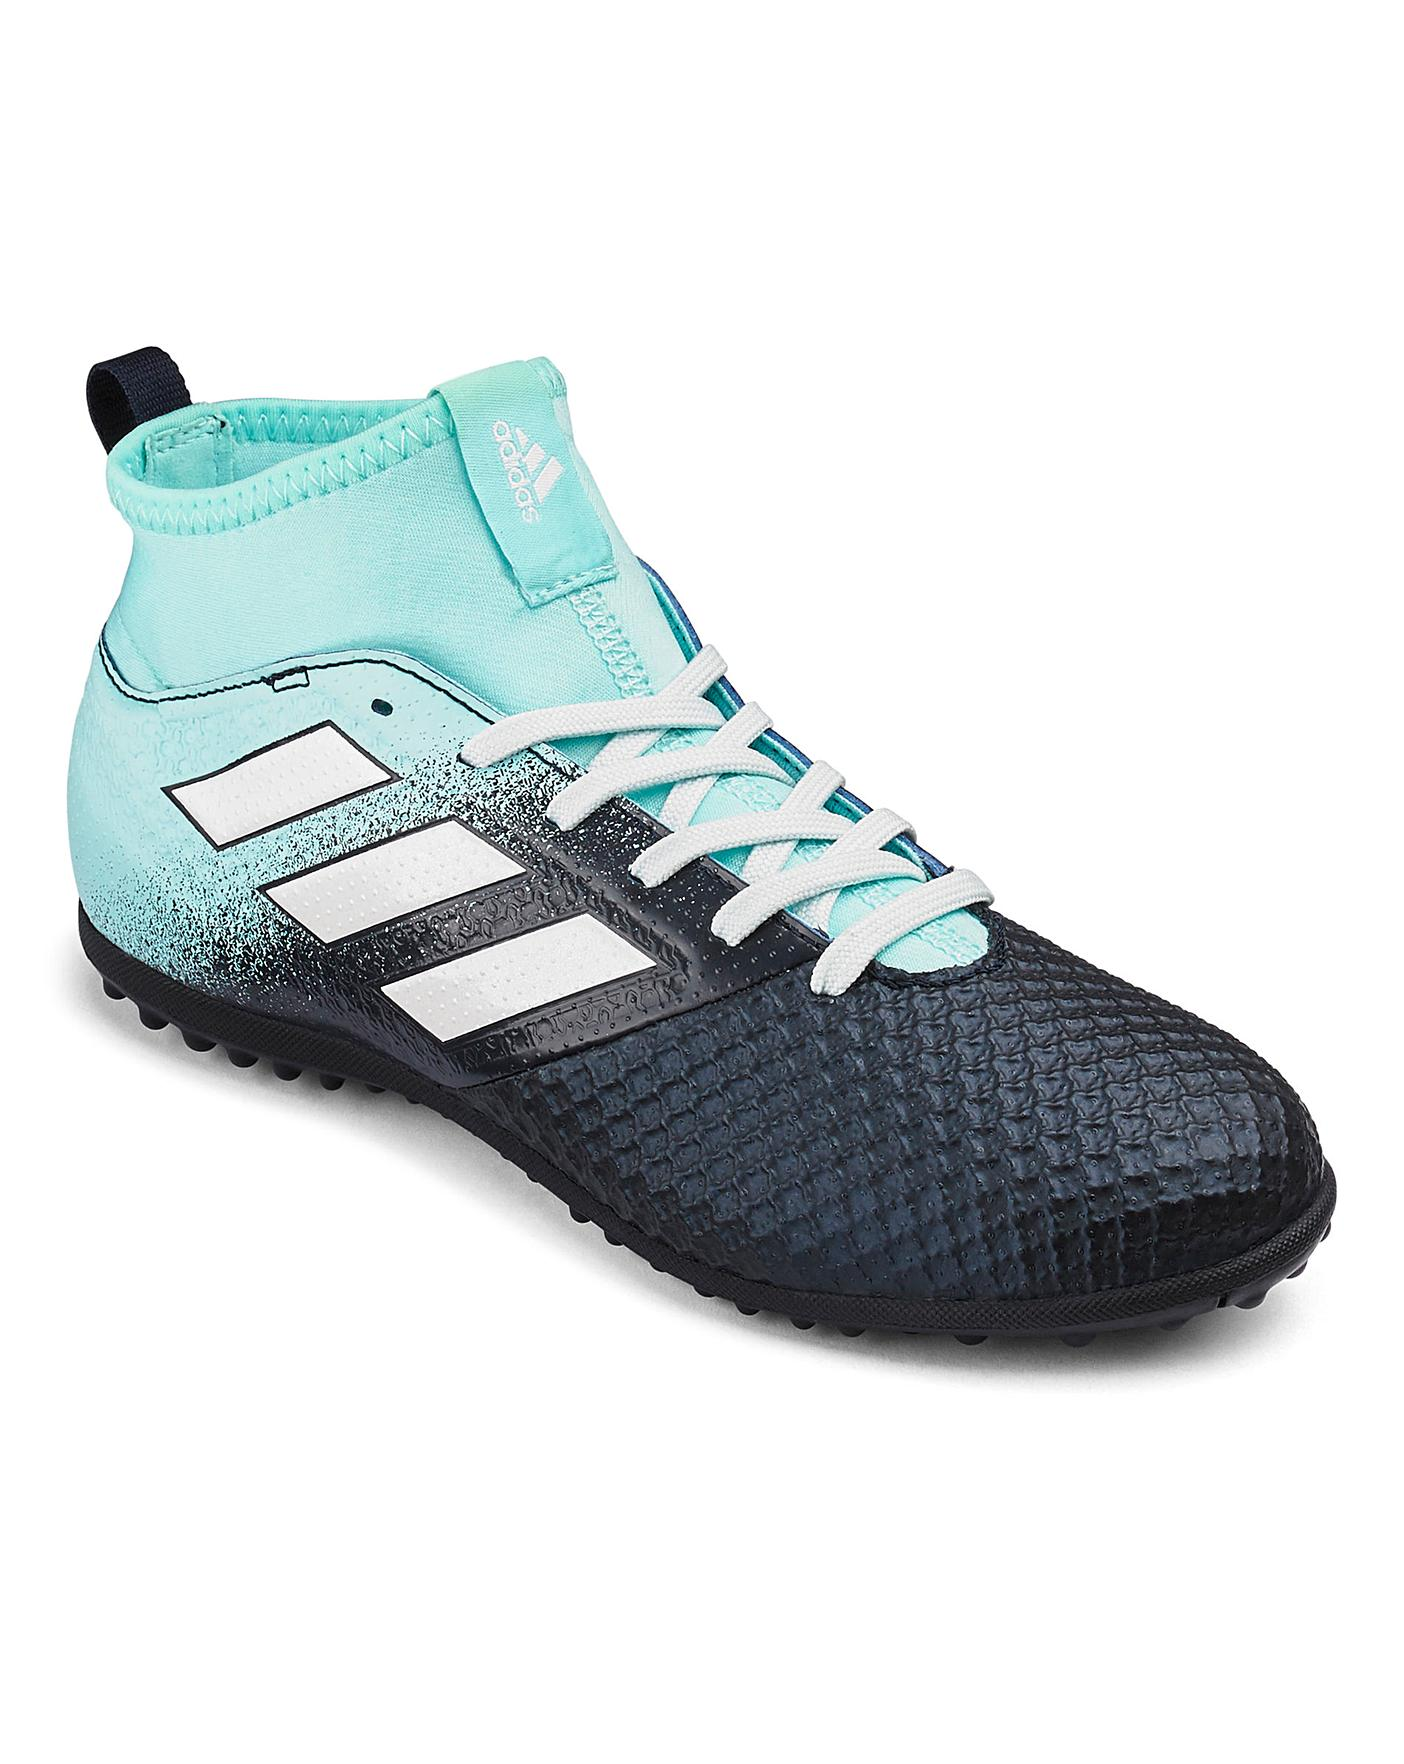 online store f29f8 4a622 Adidas Ace Tango 17.3 TF Boots